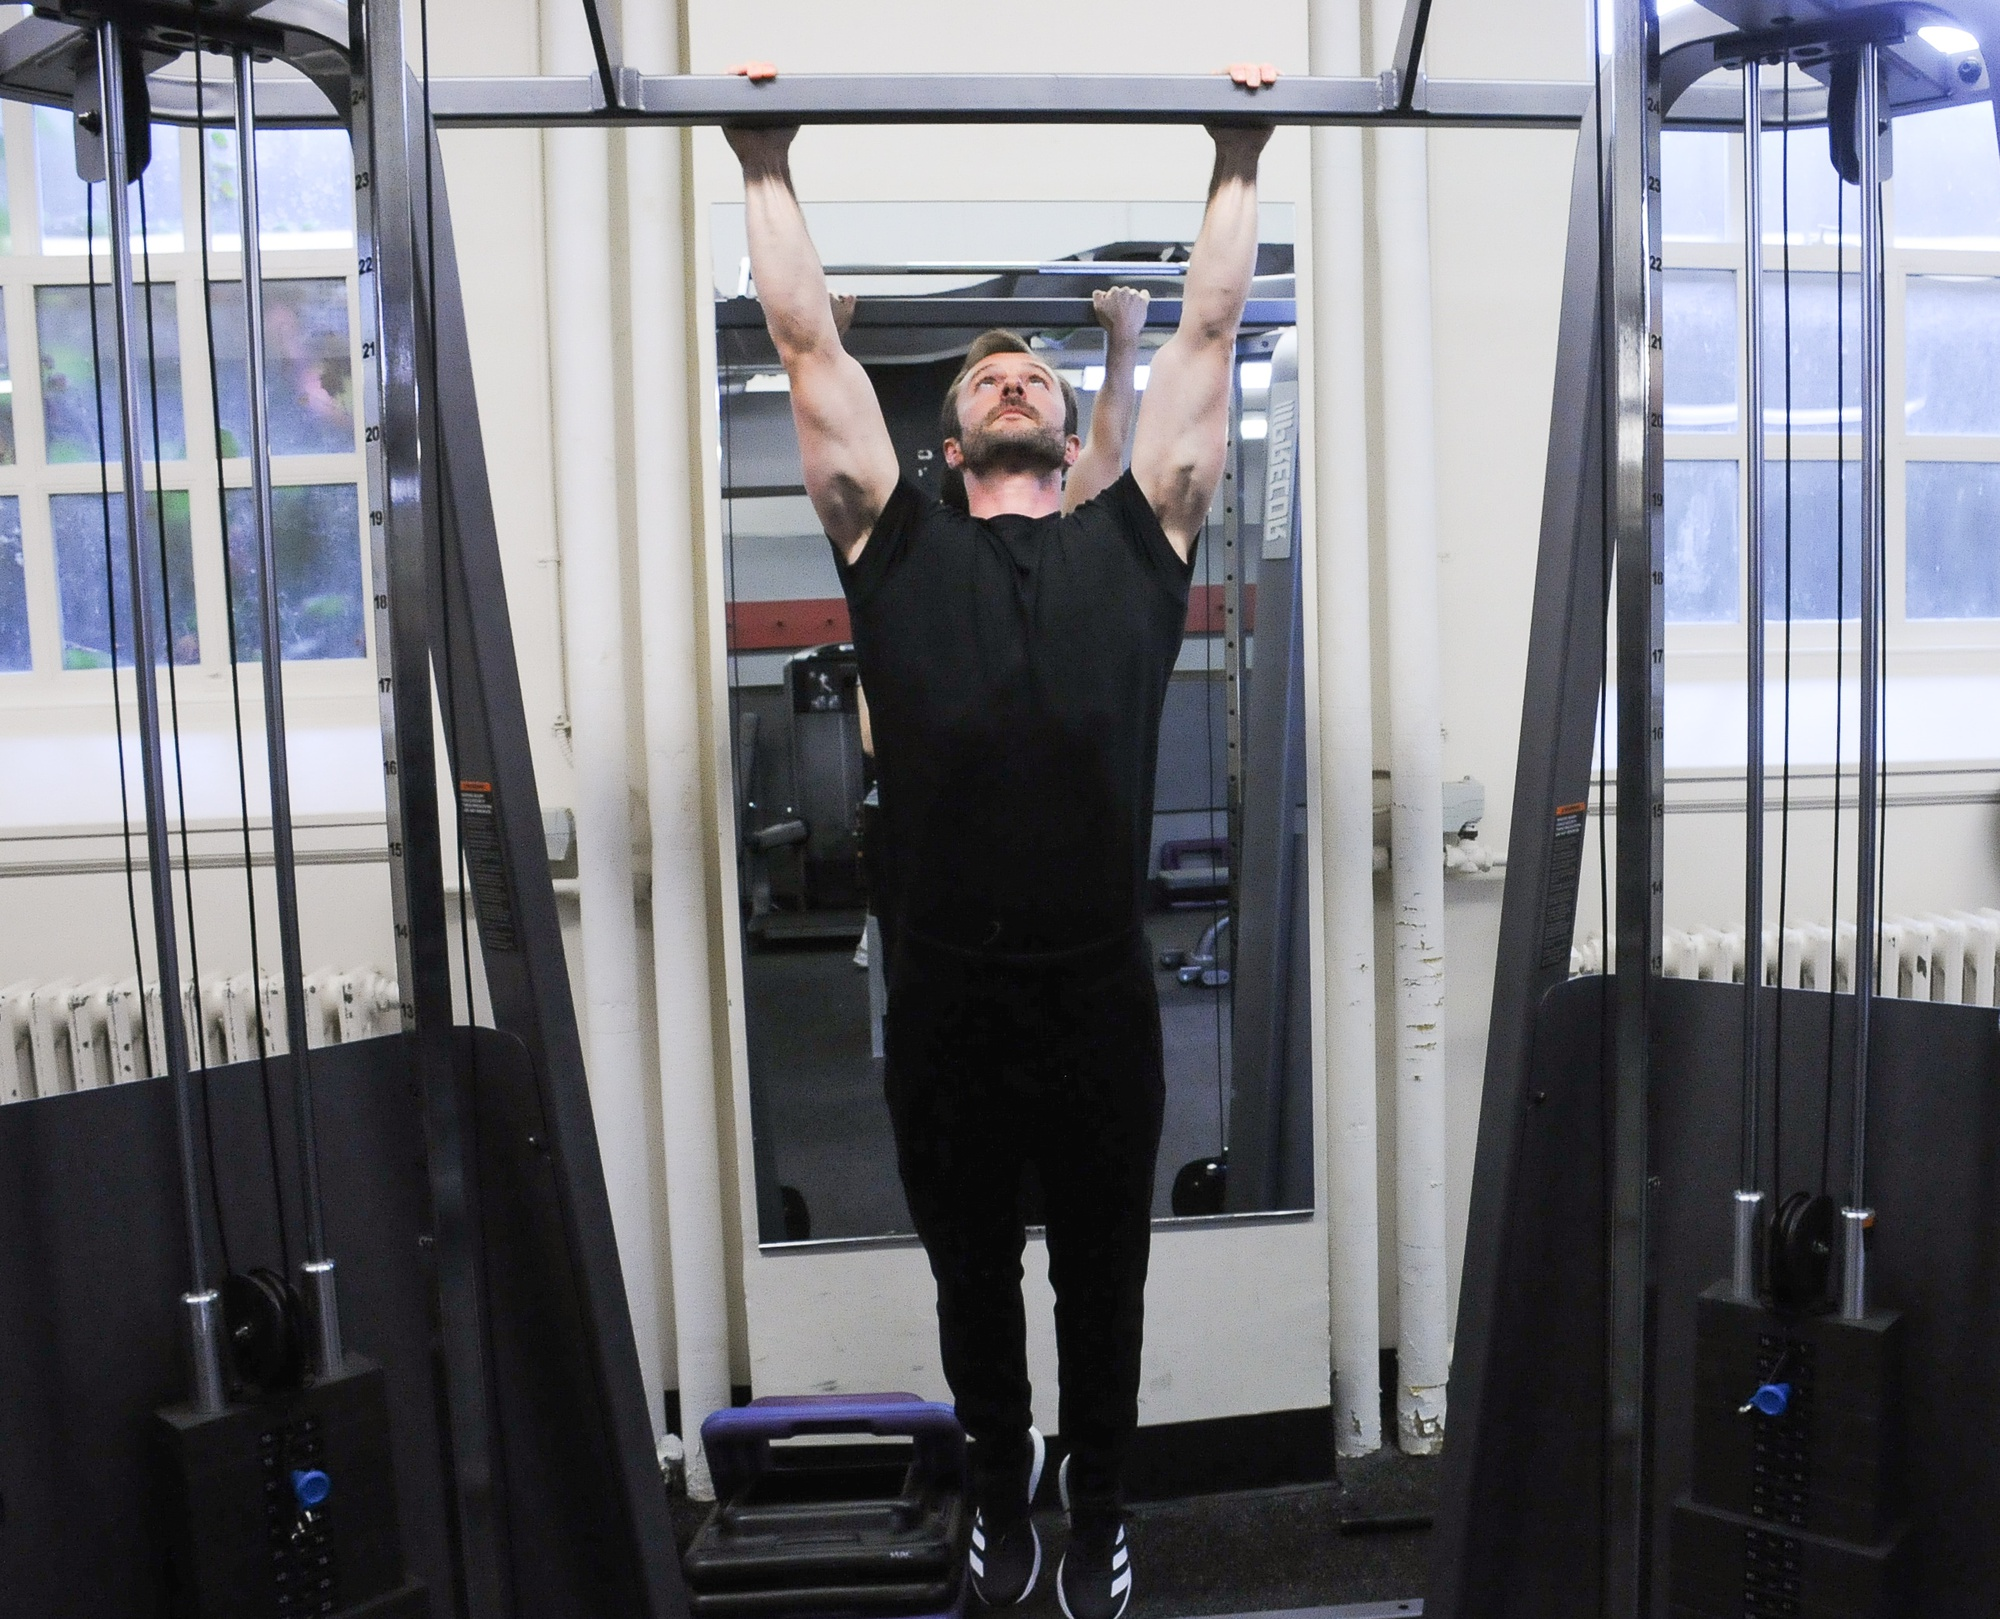 Harvard lecturer Adam E. A. Sandel '08 does pull-ups in the Malkin Athletic Center.